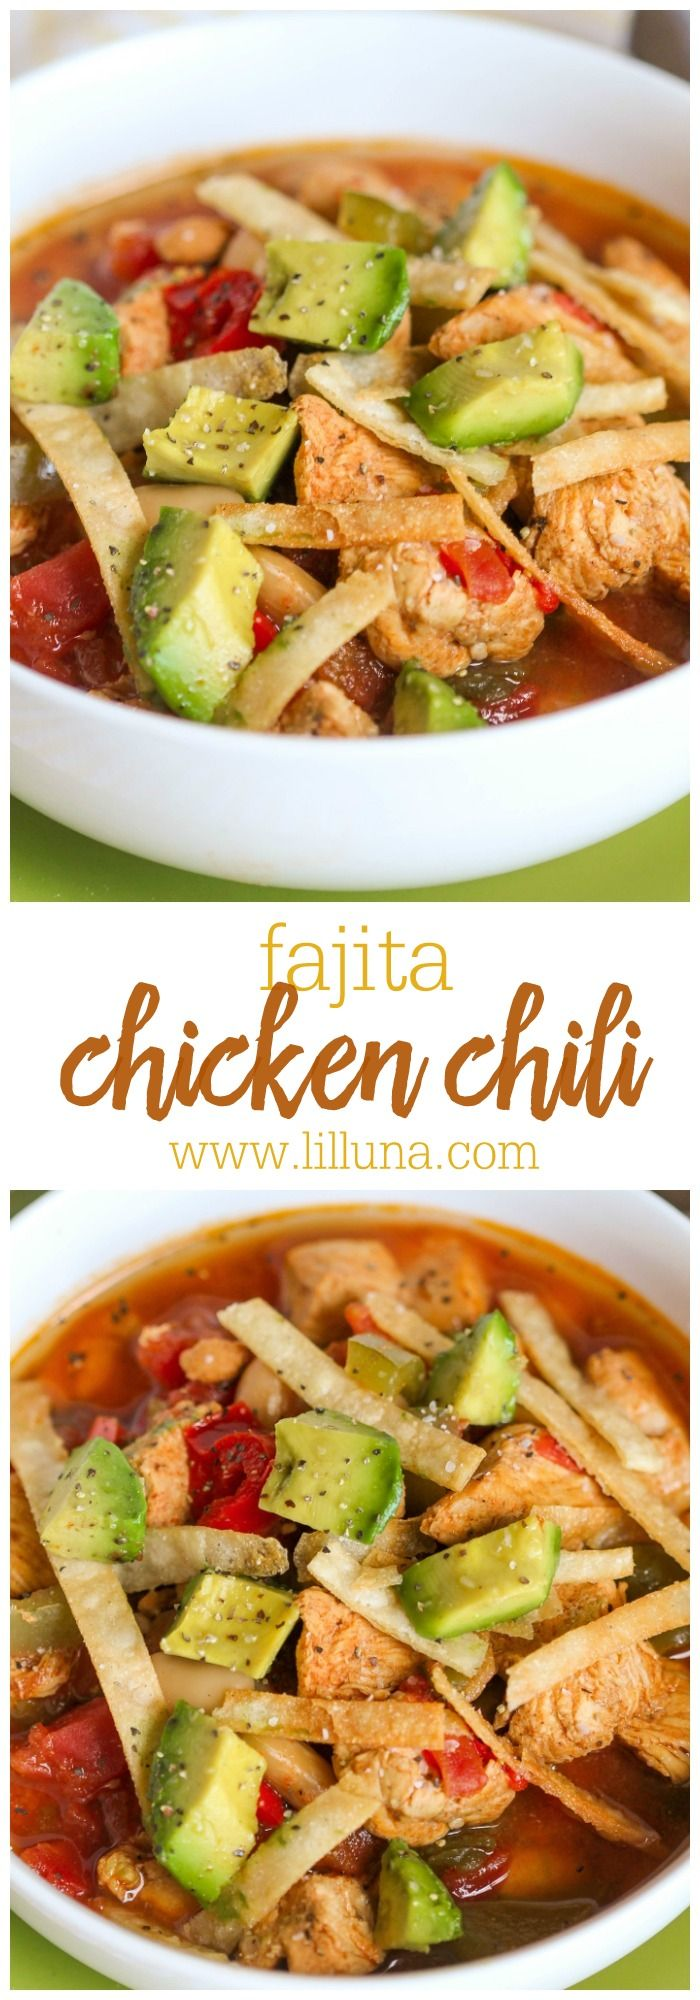 Delicious and Hearty Fajita Chicken Chili recipe - a must-try soup recipe the whole family will love. { lilluna.com } Recipe includes chicken, avocados, tomatoes, kidney beans, sitr-fry veggies and lots of delicious seasonings!